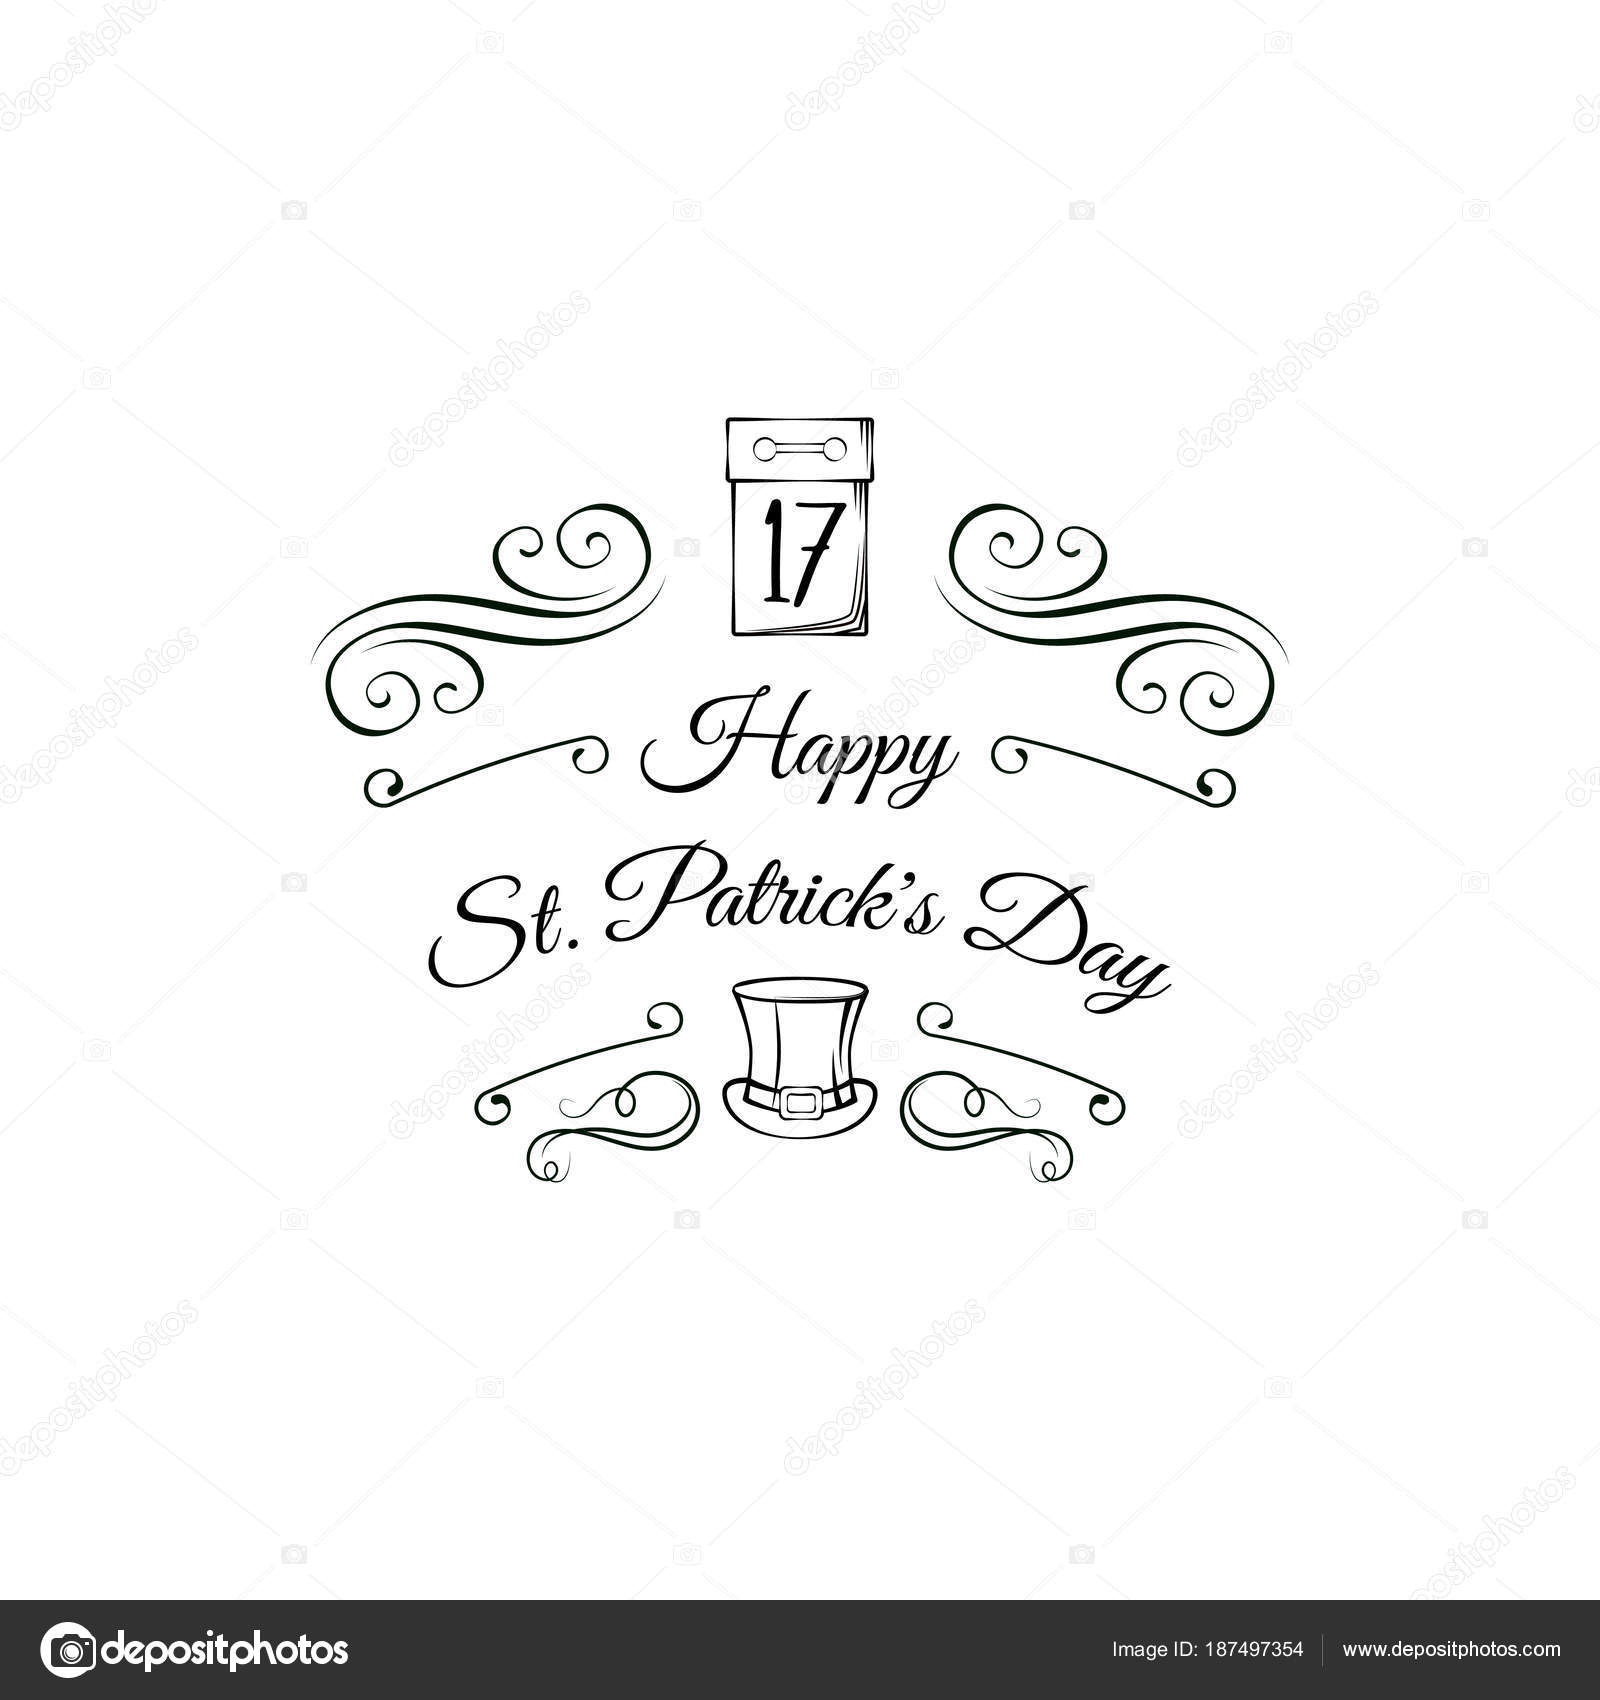 St patrick s day greeting card calendar and leprechaun s hat st patrick s day greeting card calendar and leprechaun s hat vector illustration kristyandbryce Images